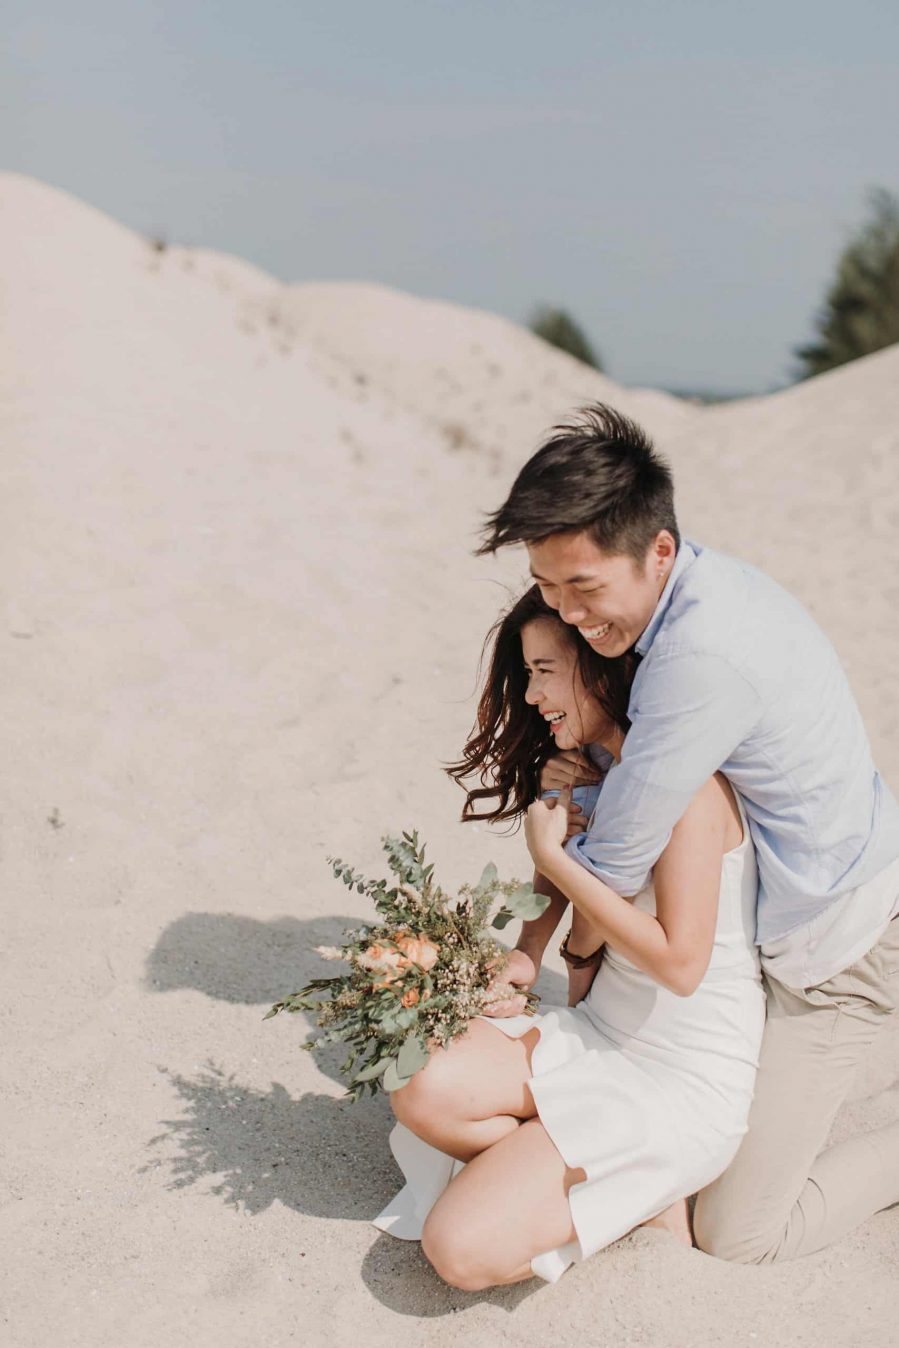 cliff choong destination portrait and wedding photographer malaysia kuala lumpur prewedding sunset golden sunrise shots bride and groom melaka desert couple kiss romantic intimate moment scene white sands rustic